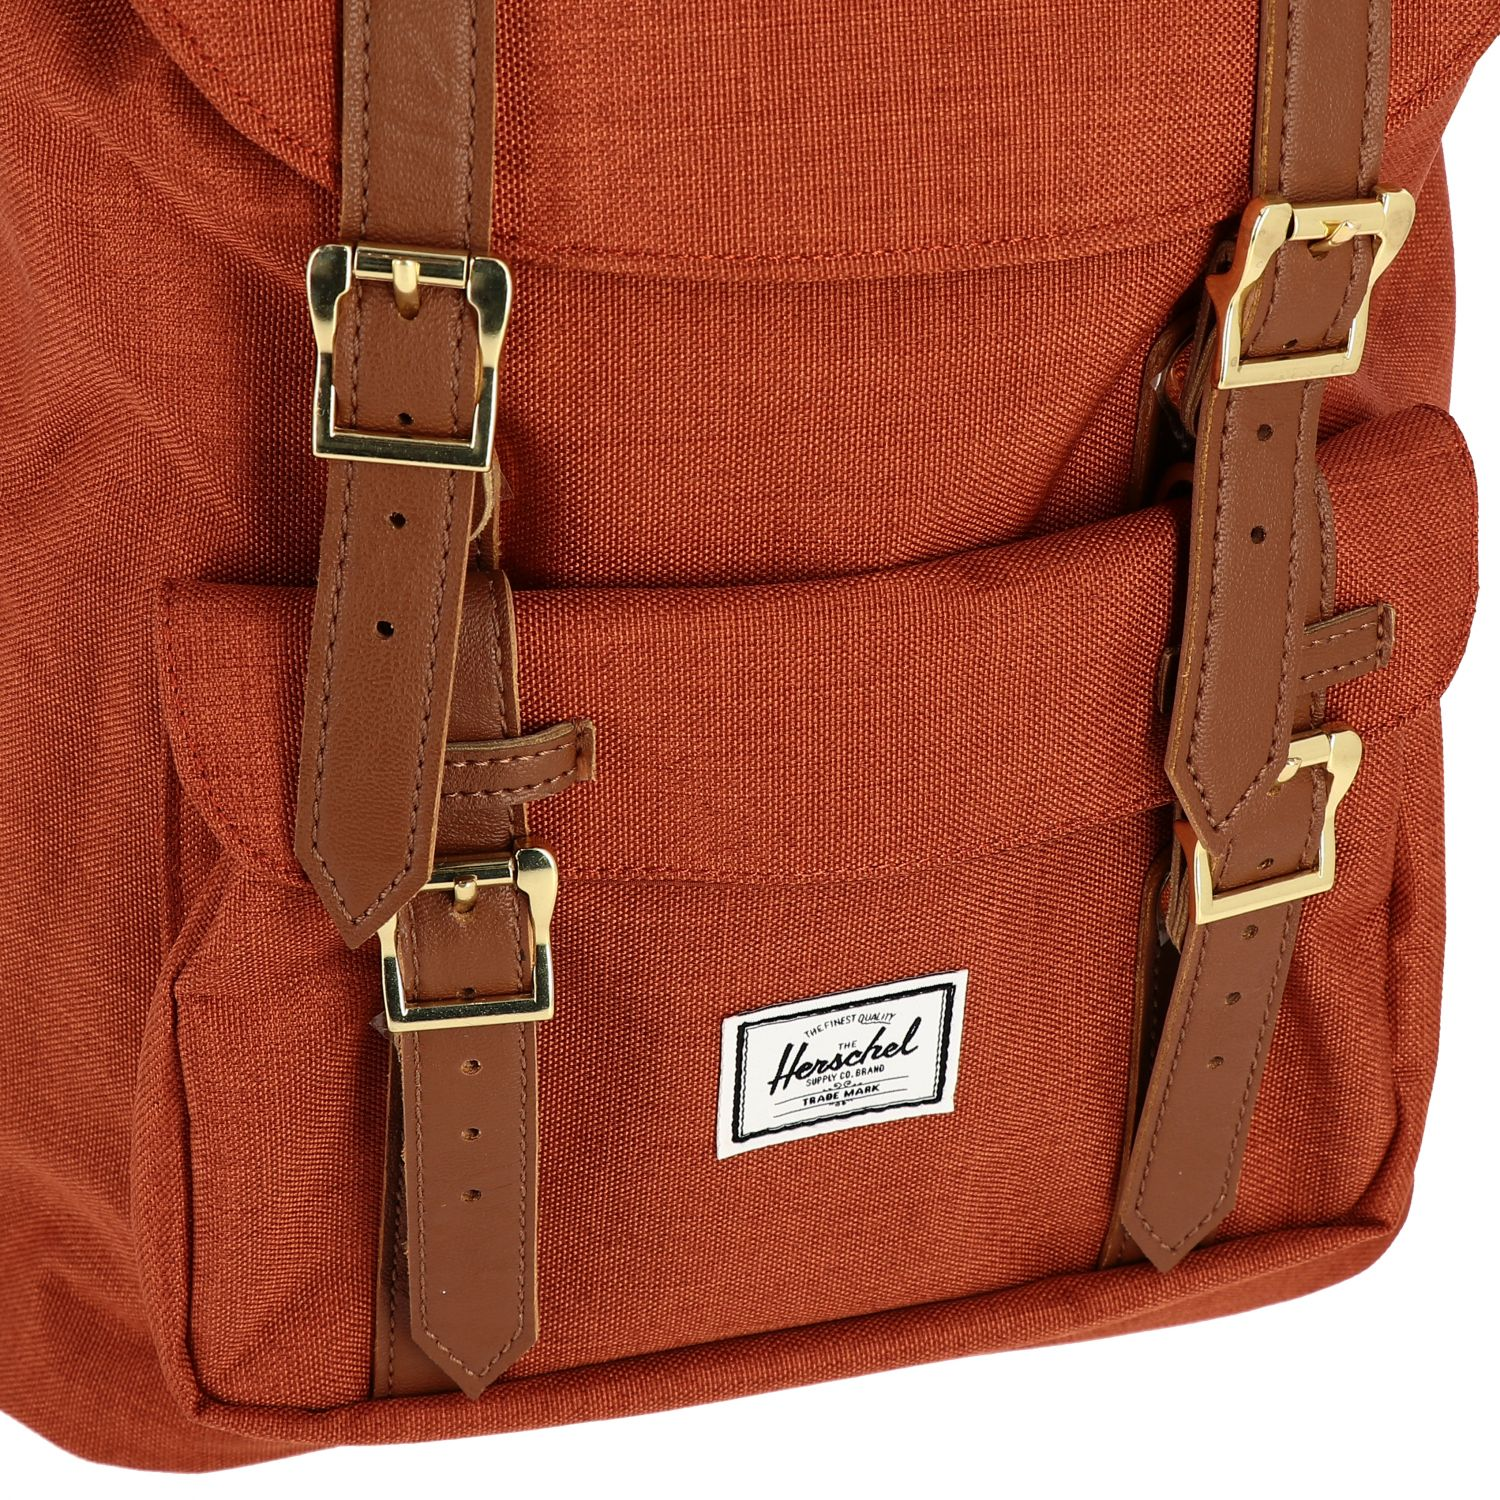 Zaino Herschel Supply Co.: Zaino Herschel Supply Co. in tela con multi fibbie ruggine 4